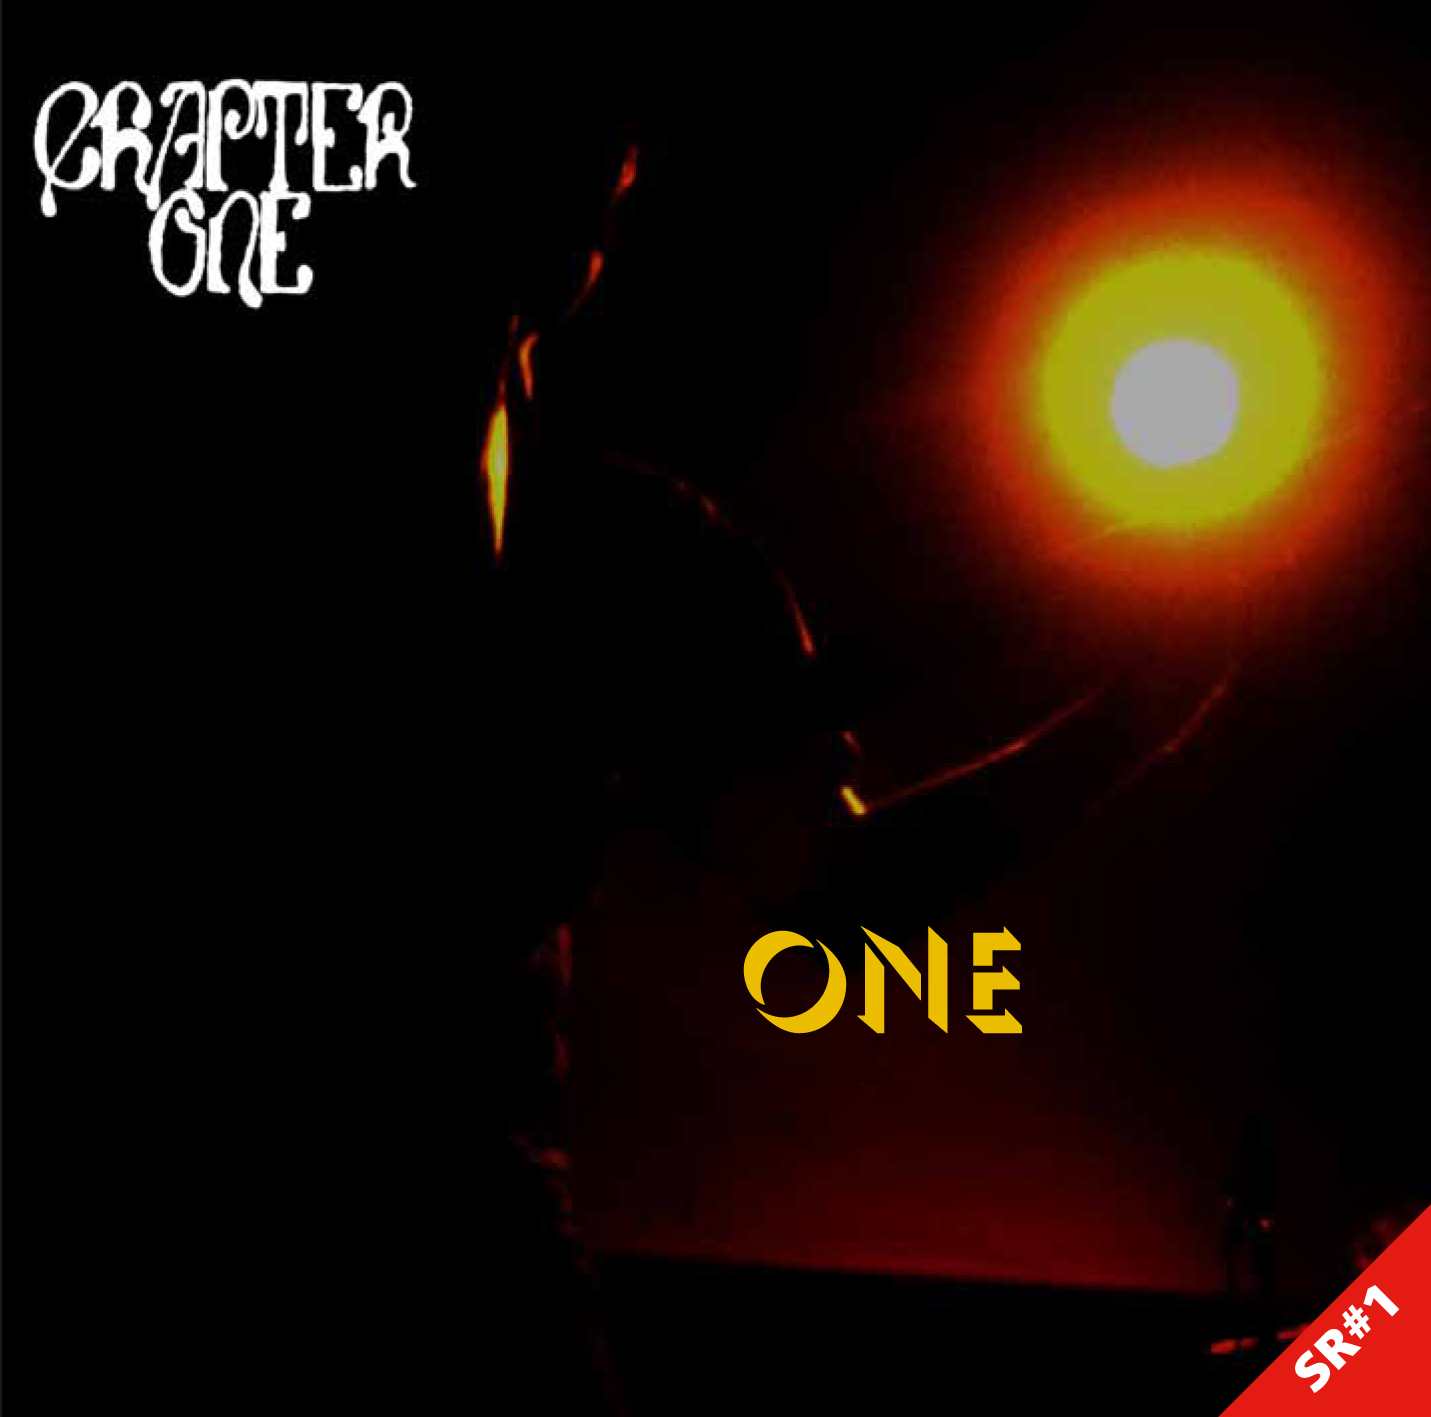 Chapter One: One